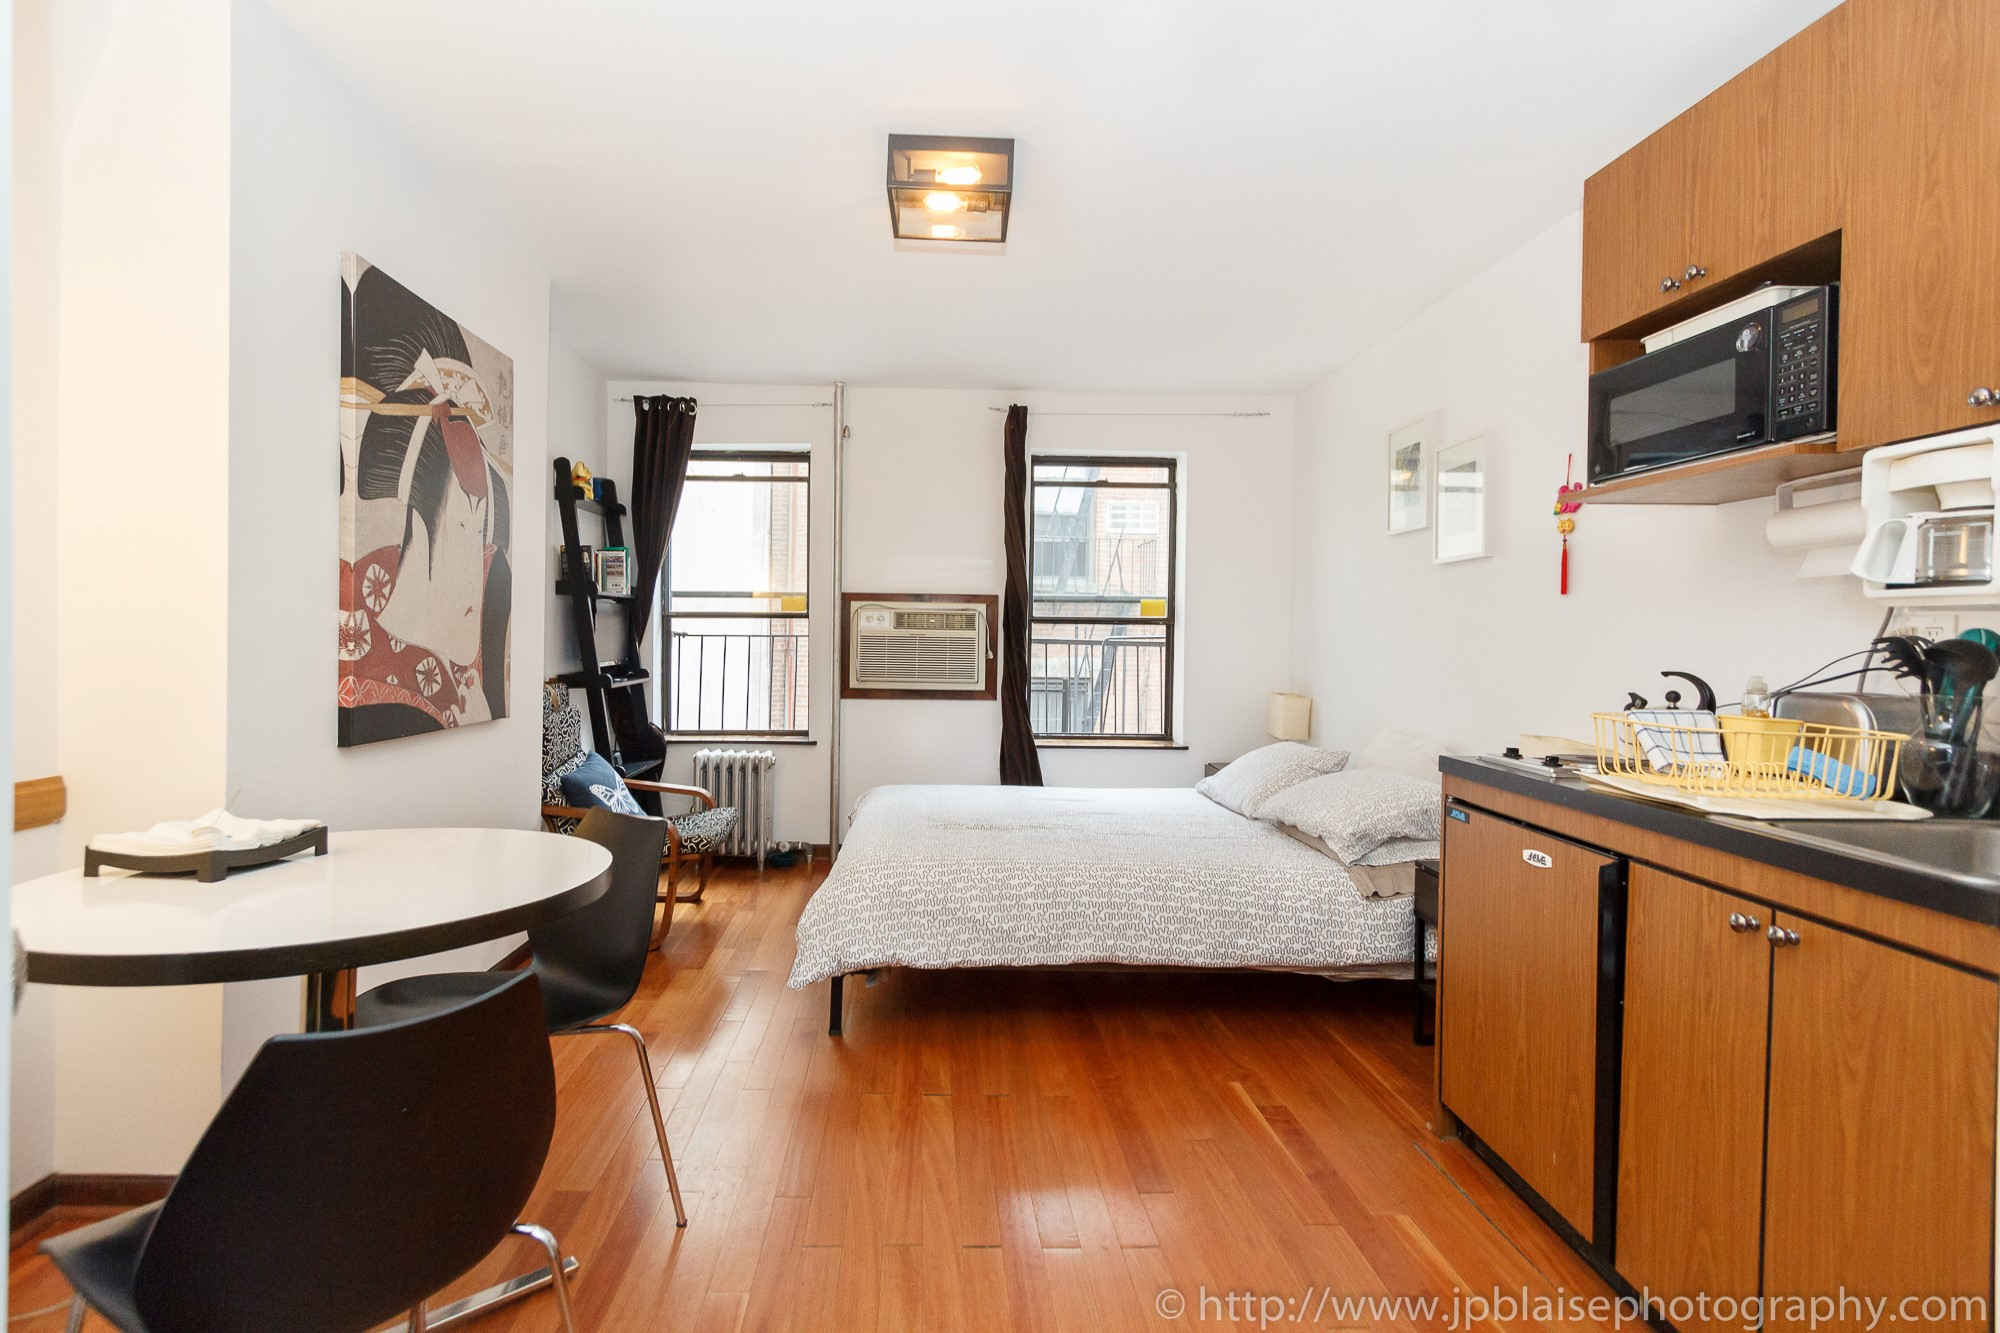 Holiday apartments to rent in midtown new york latest for Real estate nyc apartments